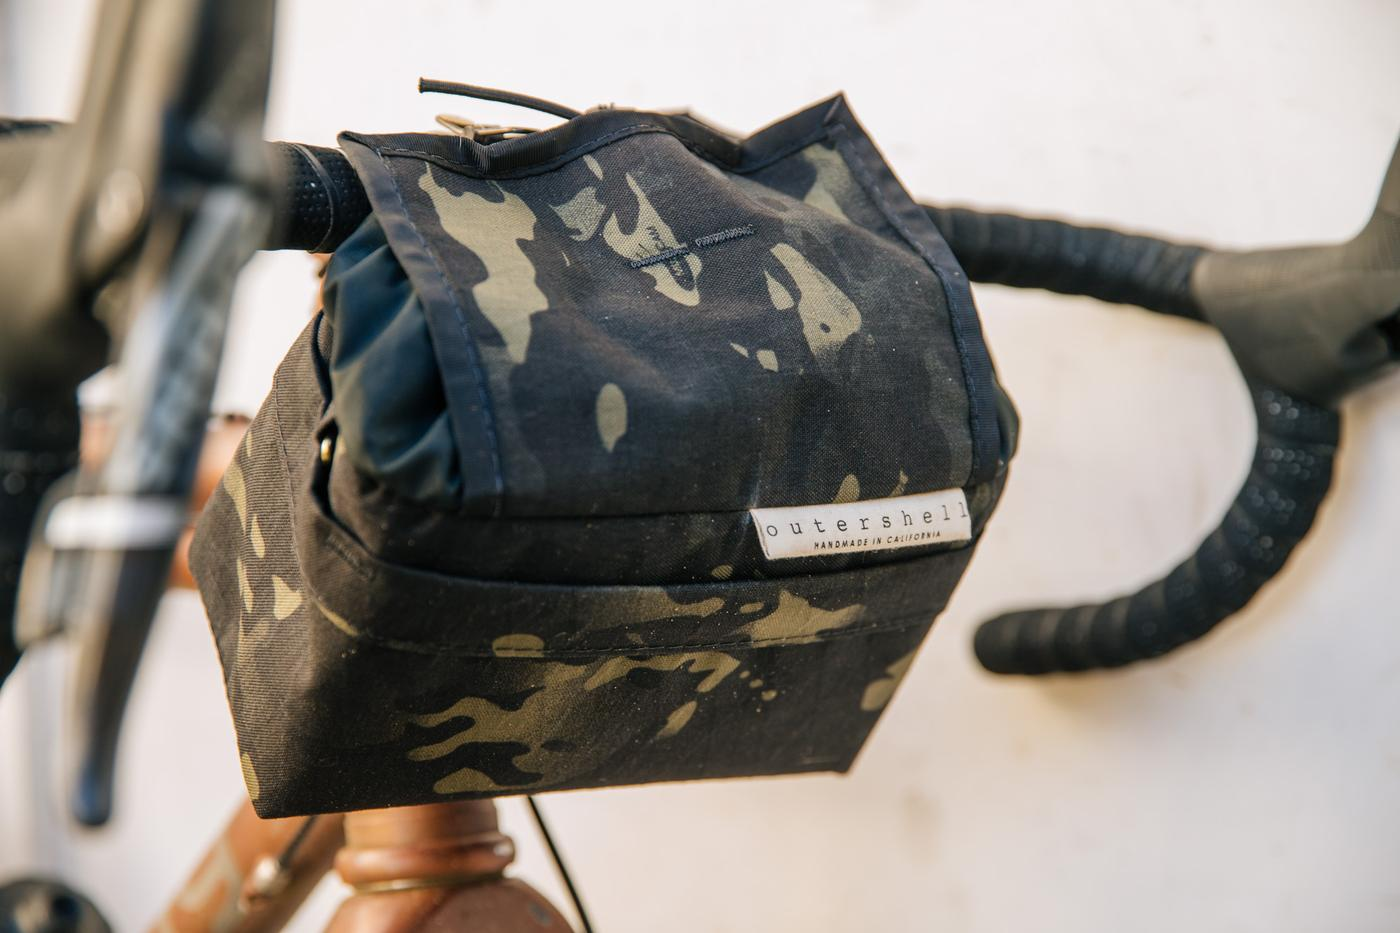 Outershell Camera Bag-7